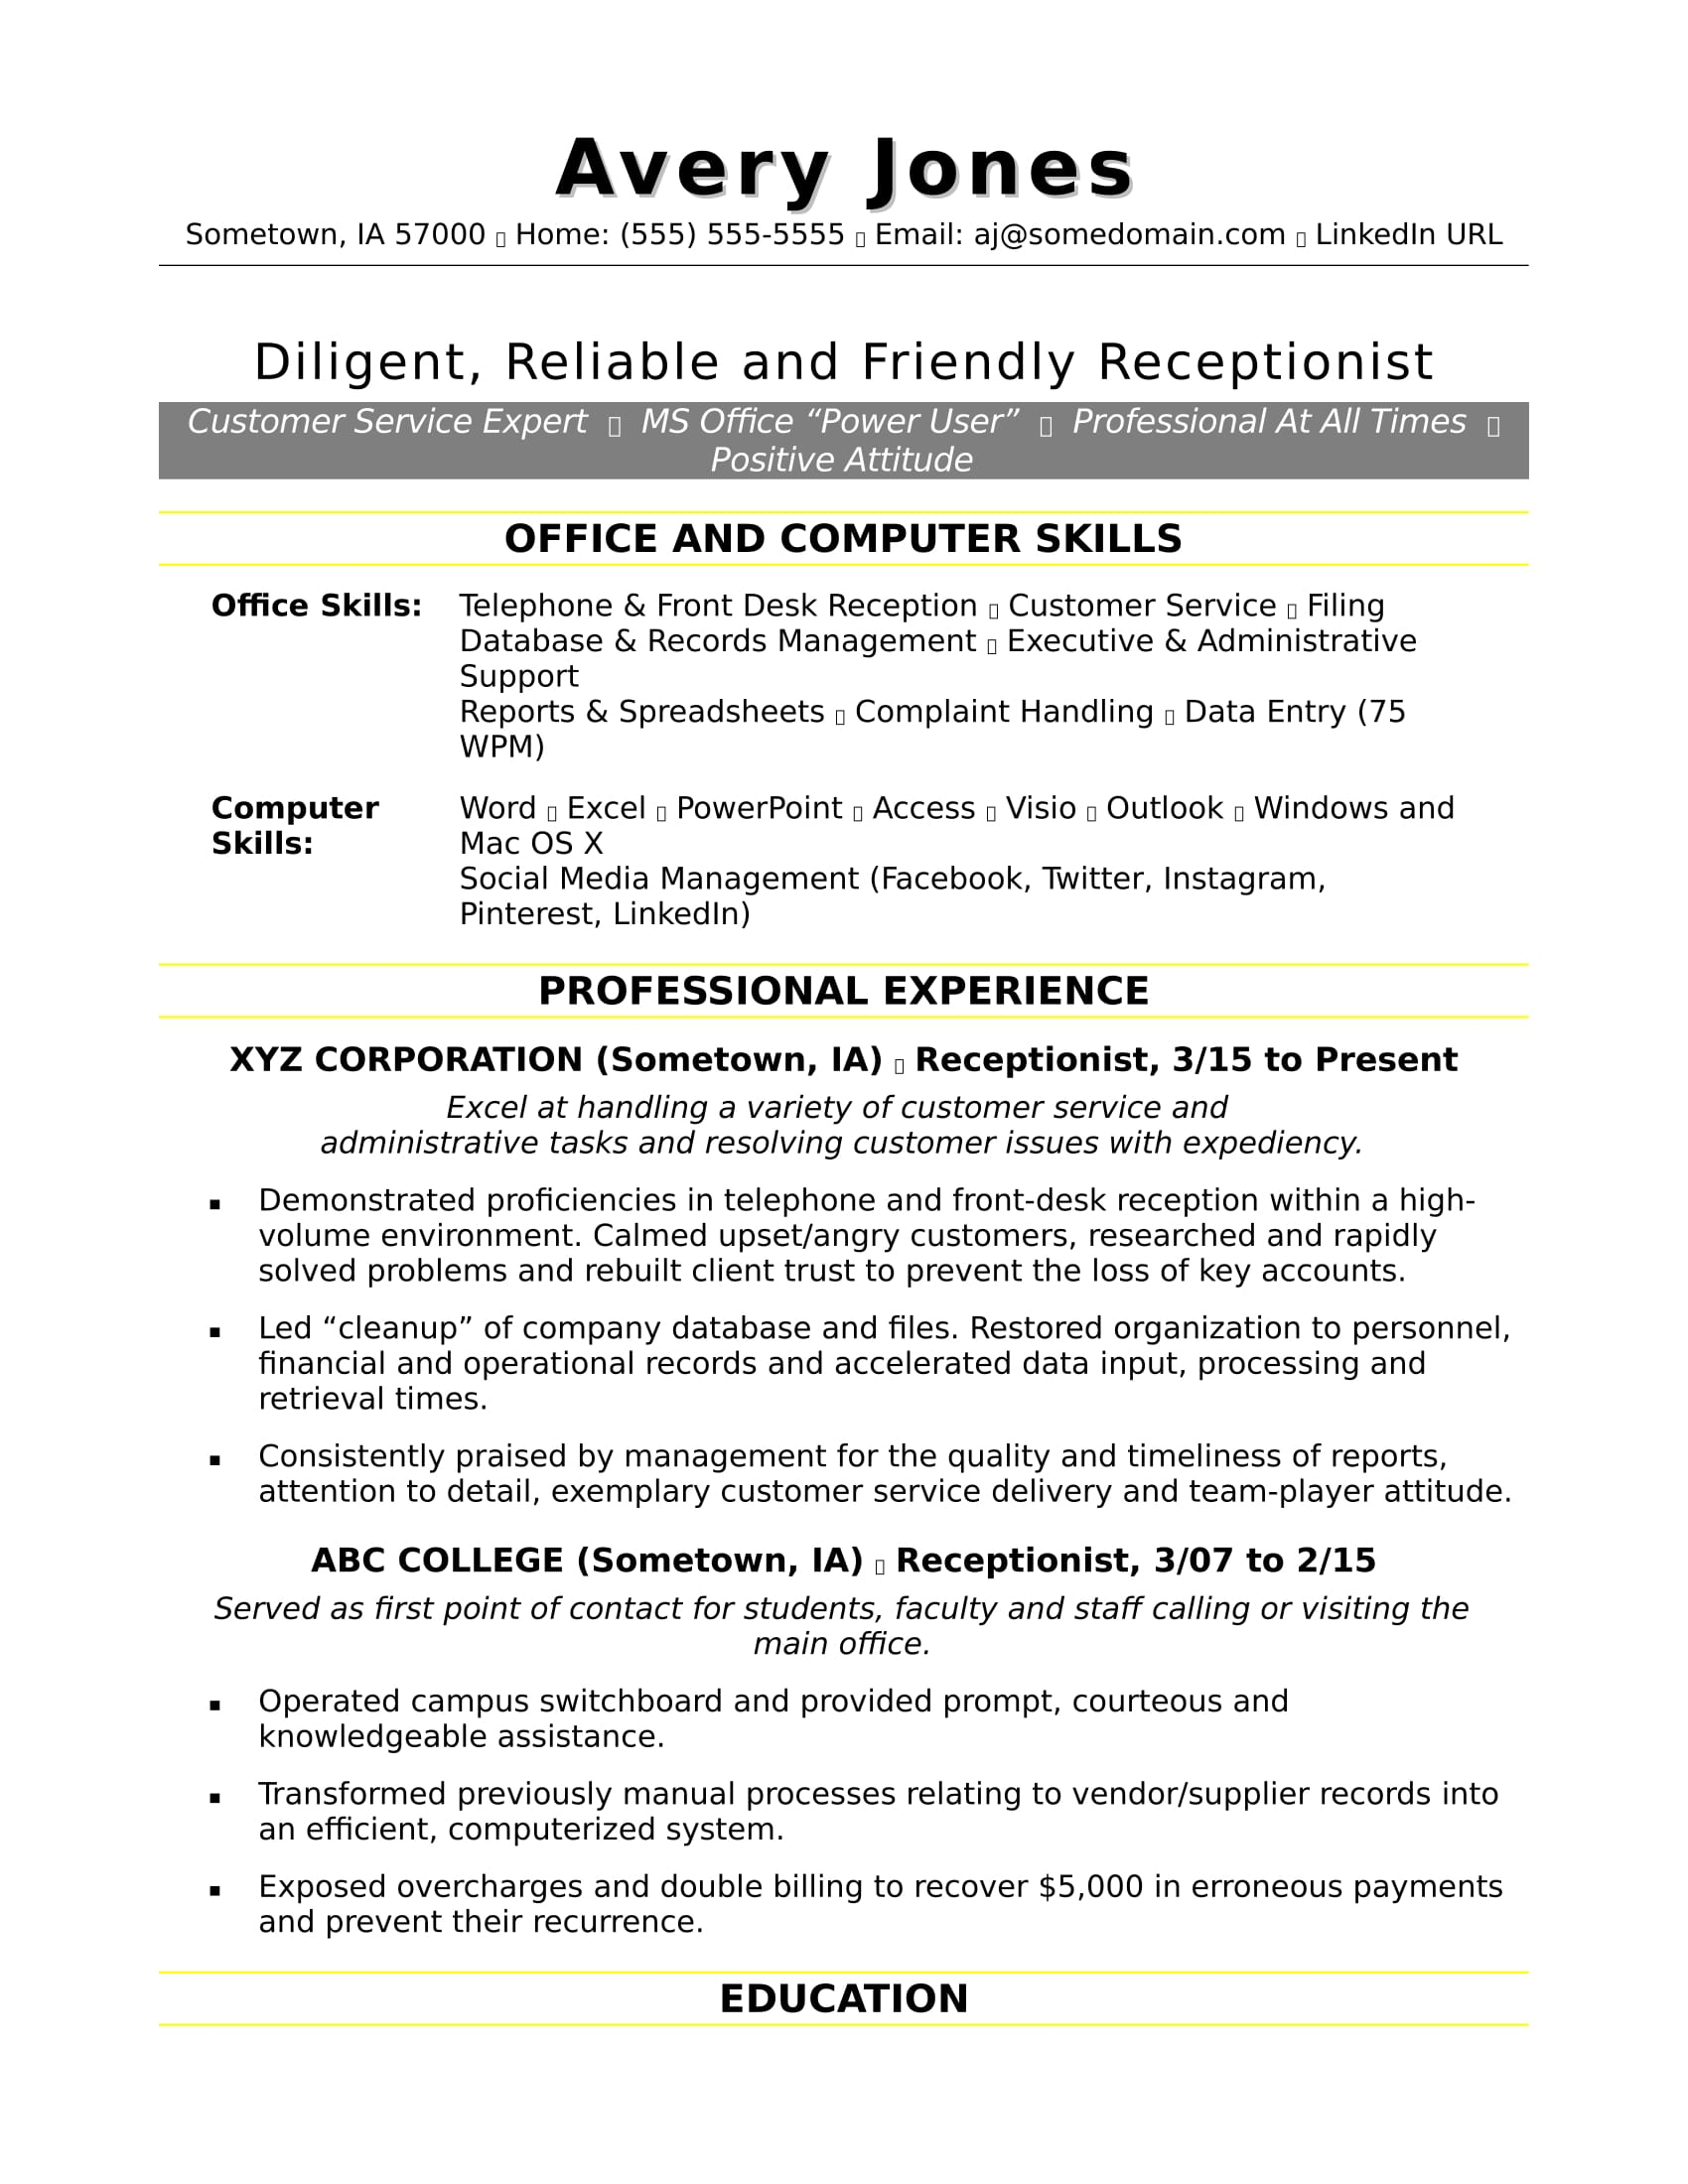 sample resume for a receptionist - Sample Resume Skills For Customer Service